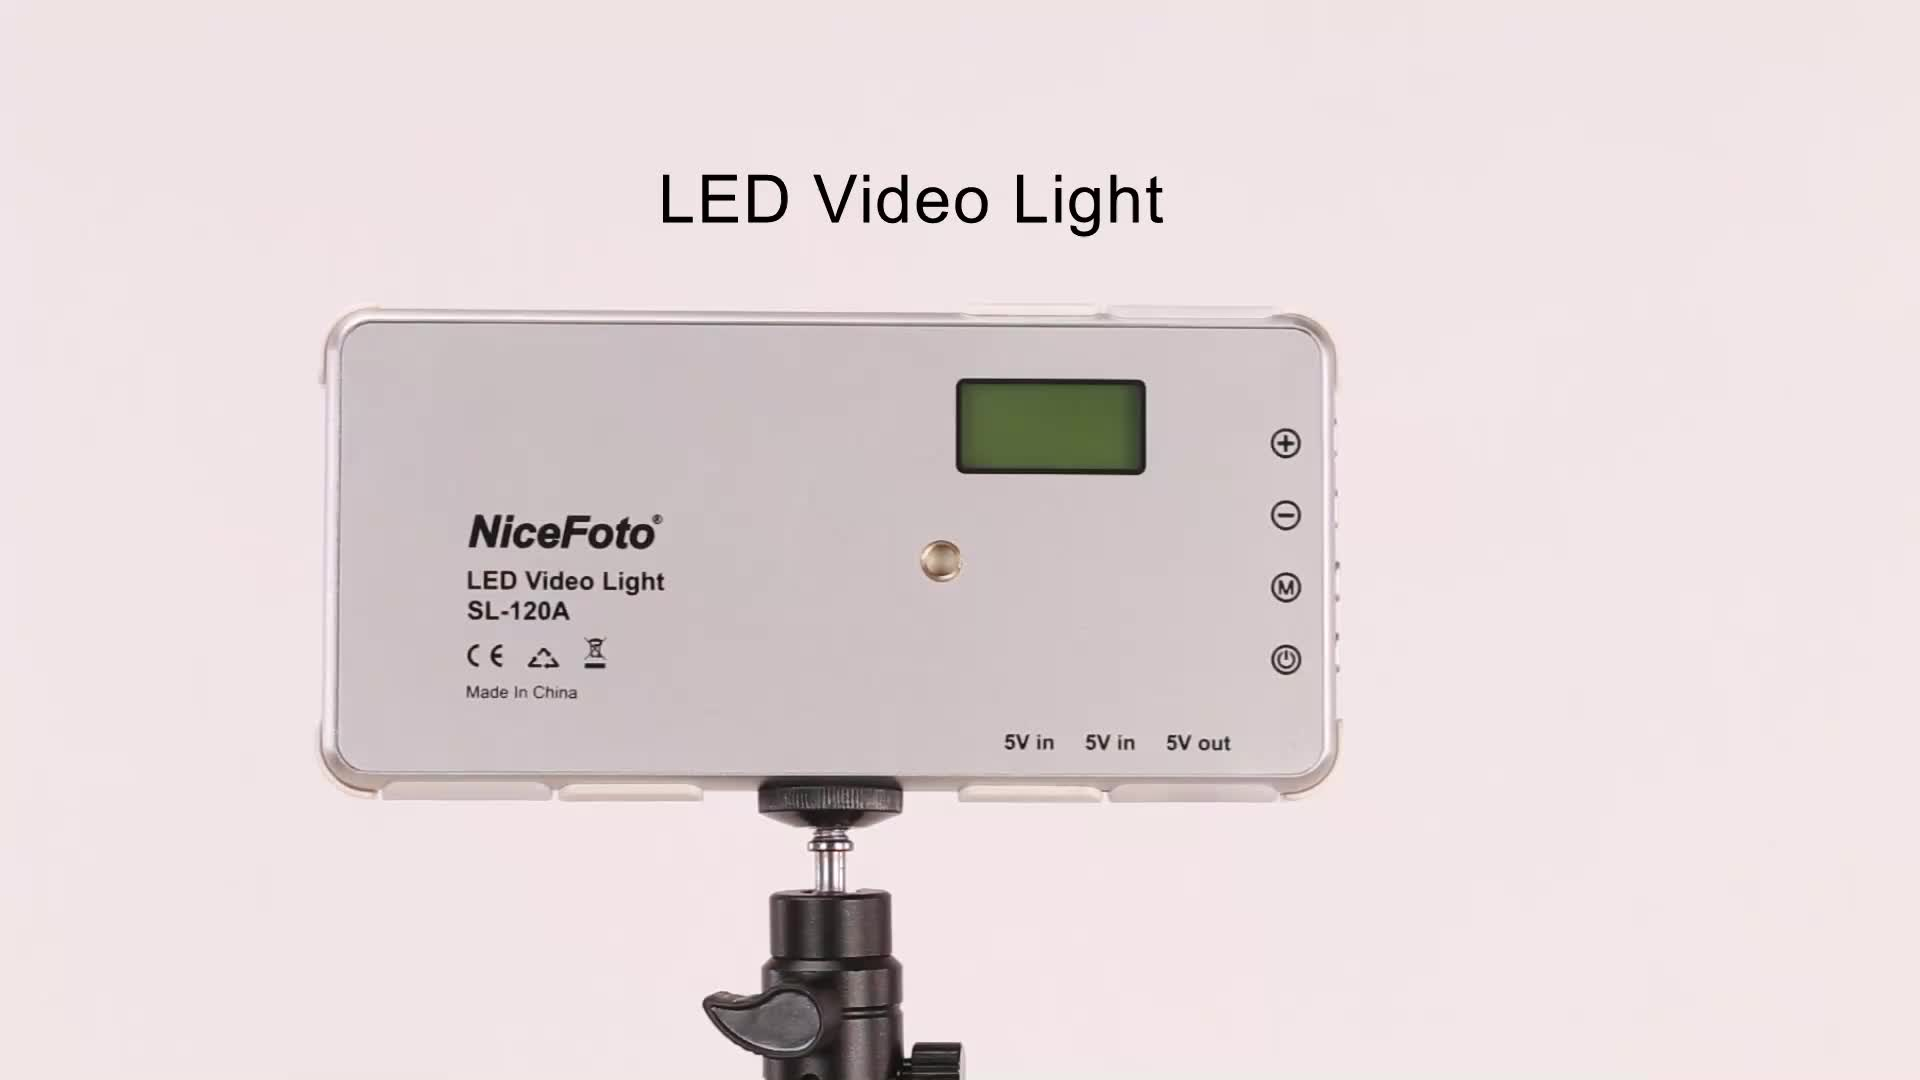 NiceFoto SL-120A LED Video Light photo lighting camera light battery pack for mobile charge video  equipment